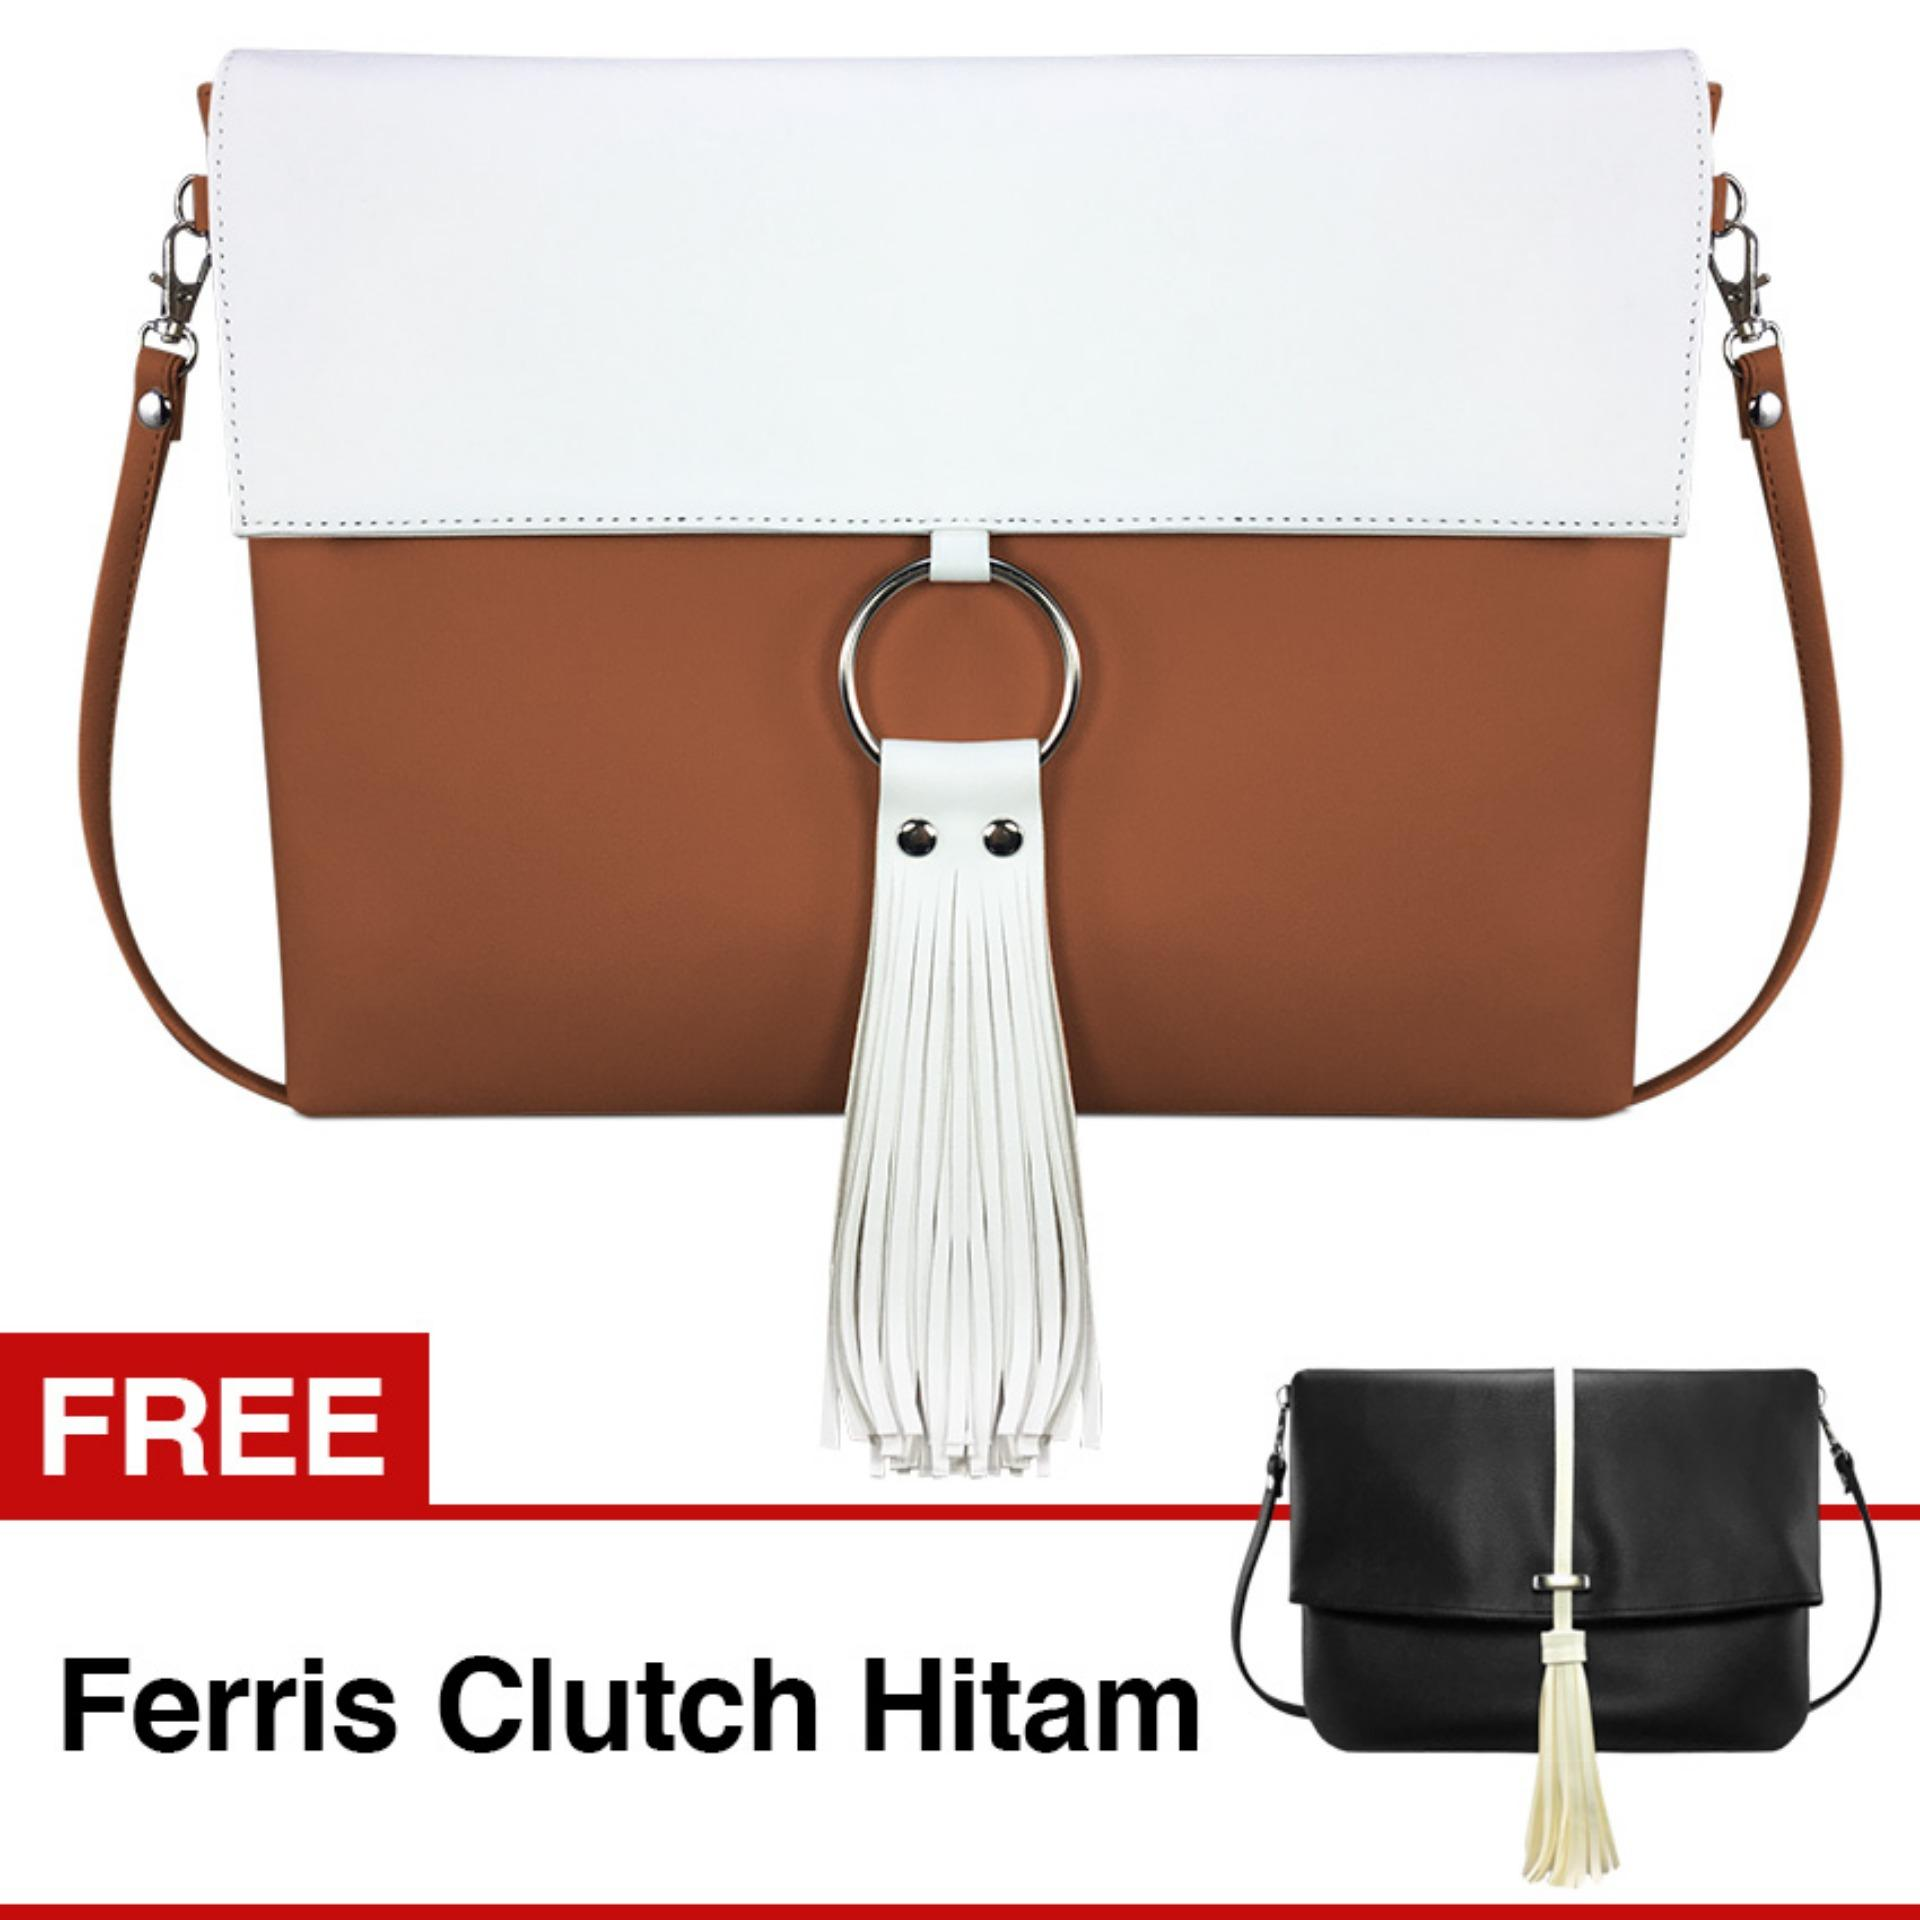 Harga Vona Robin Gratis Free Ferris Hitam Paket 2 In 1 Tas Wanita Selempang Tangan Shoulder Bag Handbag Sling Crossbody Tote Dompet Slingbag Purse Clutch Faux Pu Leather Kulit Sintetis Tali Panjang Best Seller Terbaru New Branded Fashion Korean Style Yang Murah